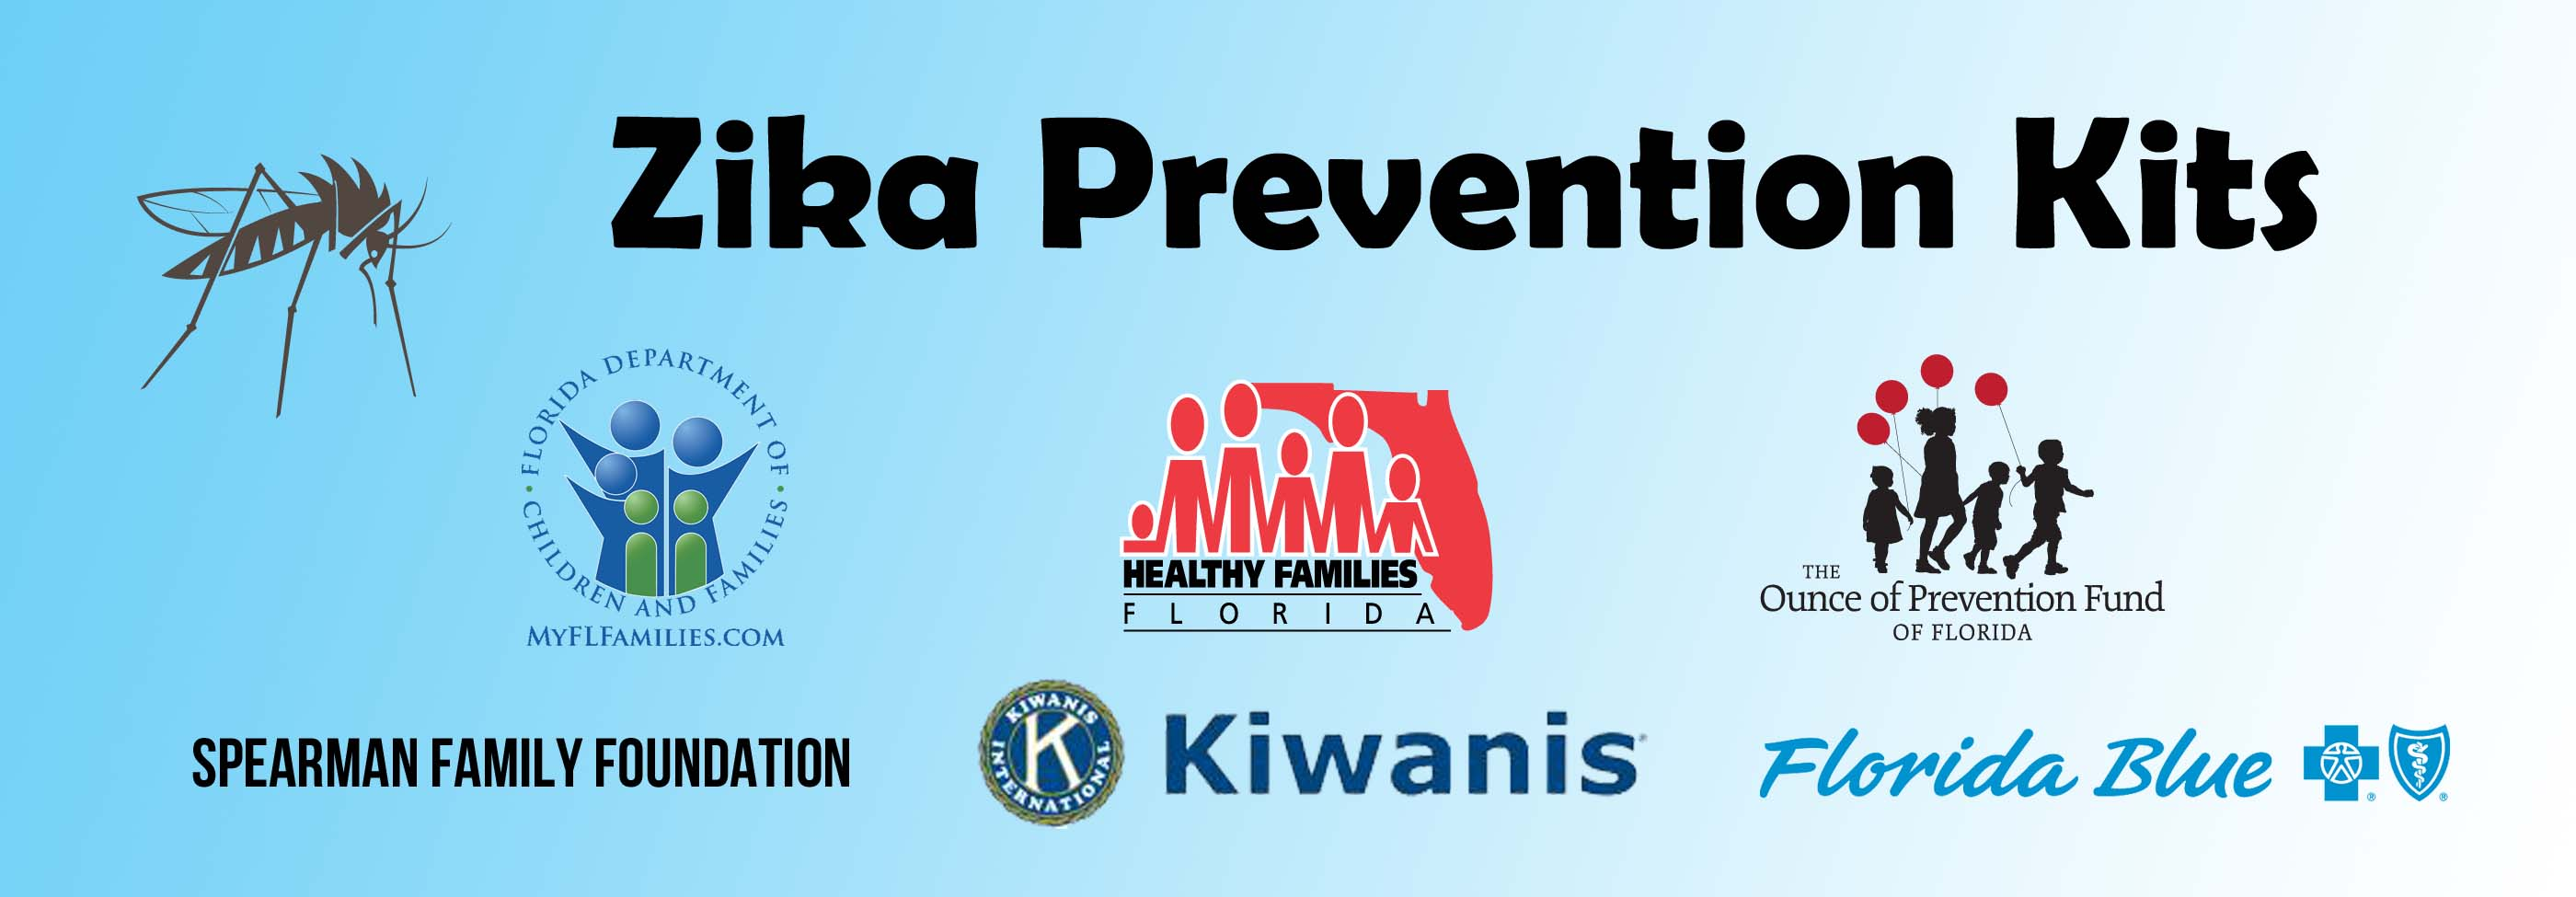 Zika Prevention Kits